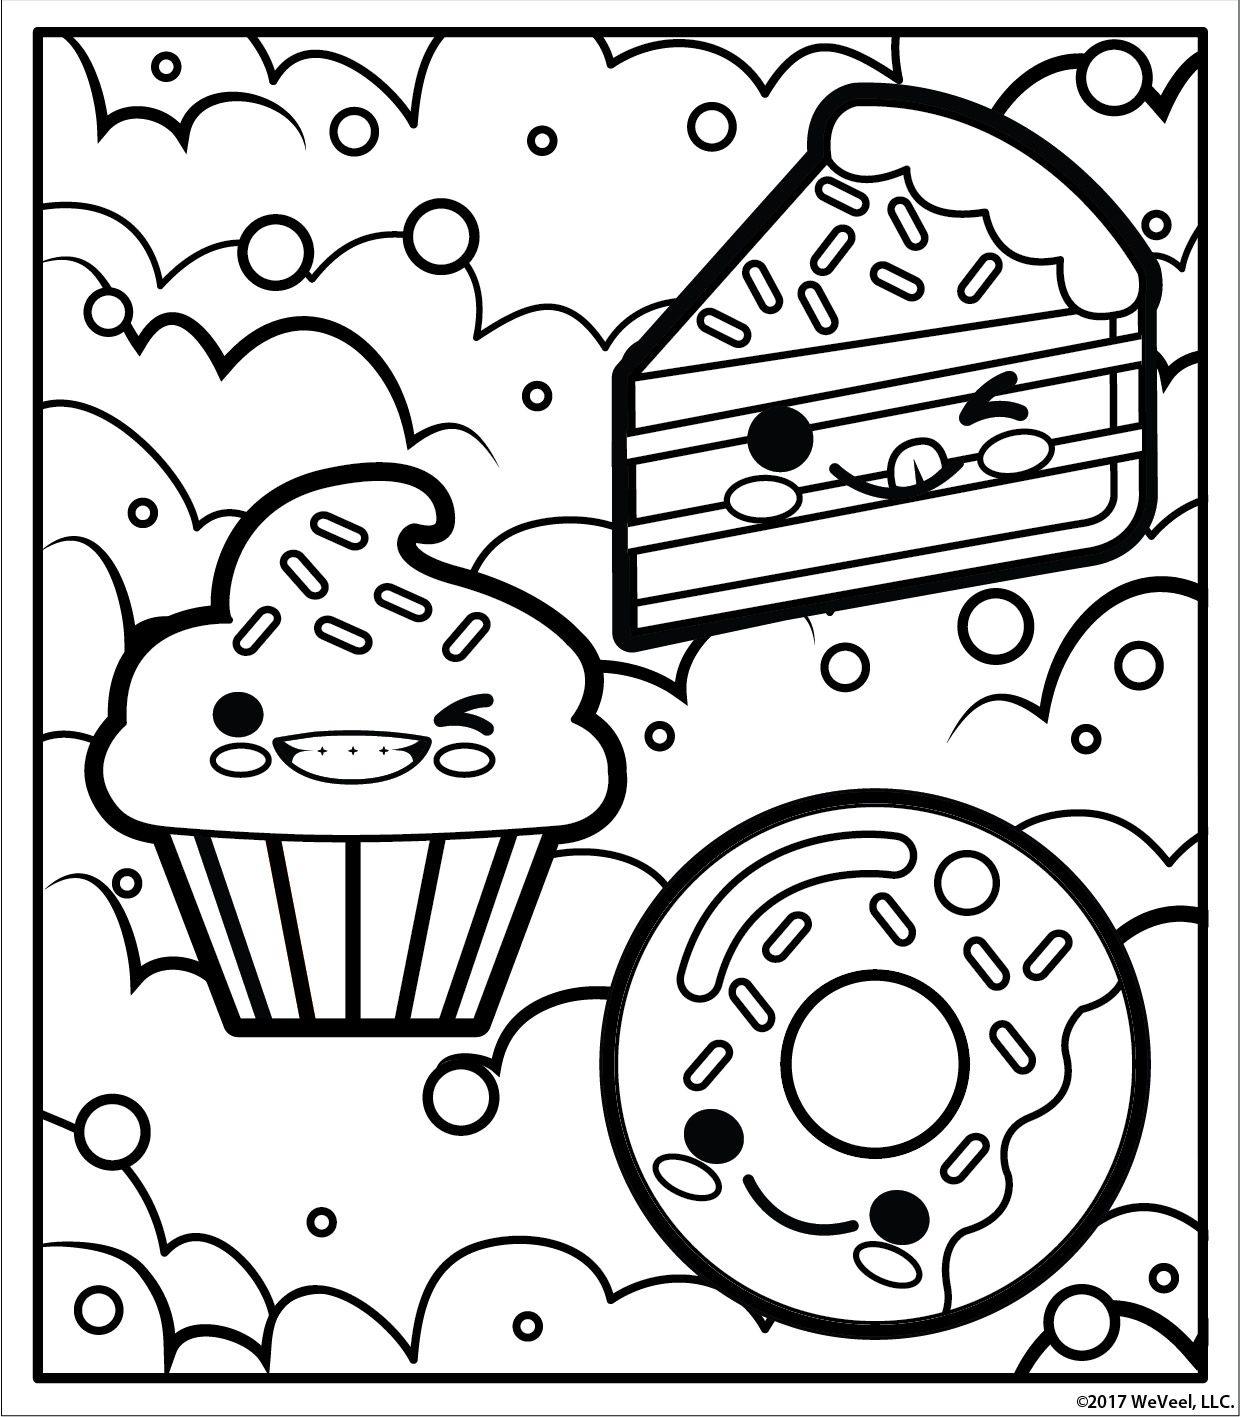 edible food coloring its ice cream food coloring pages food coloring ice cream edible food coloring